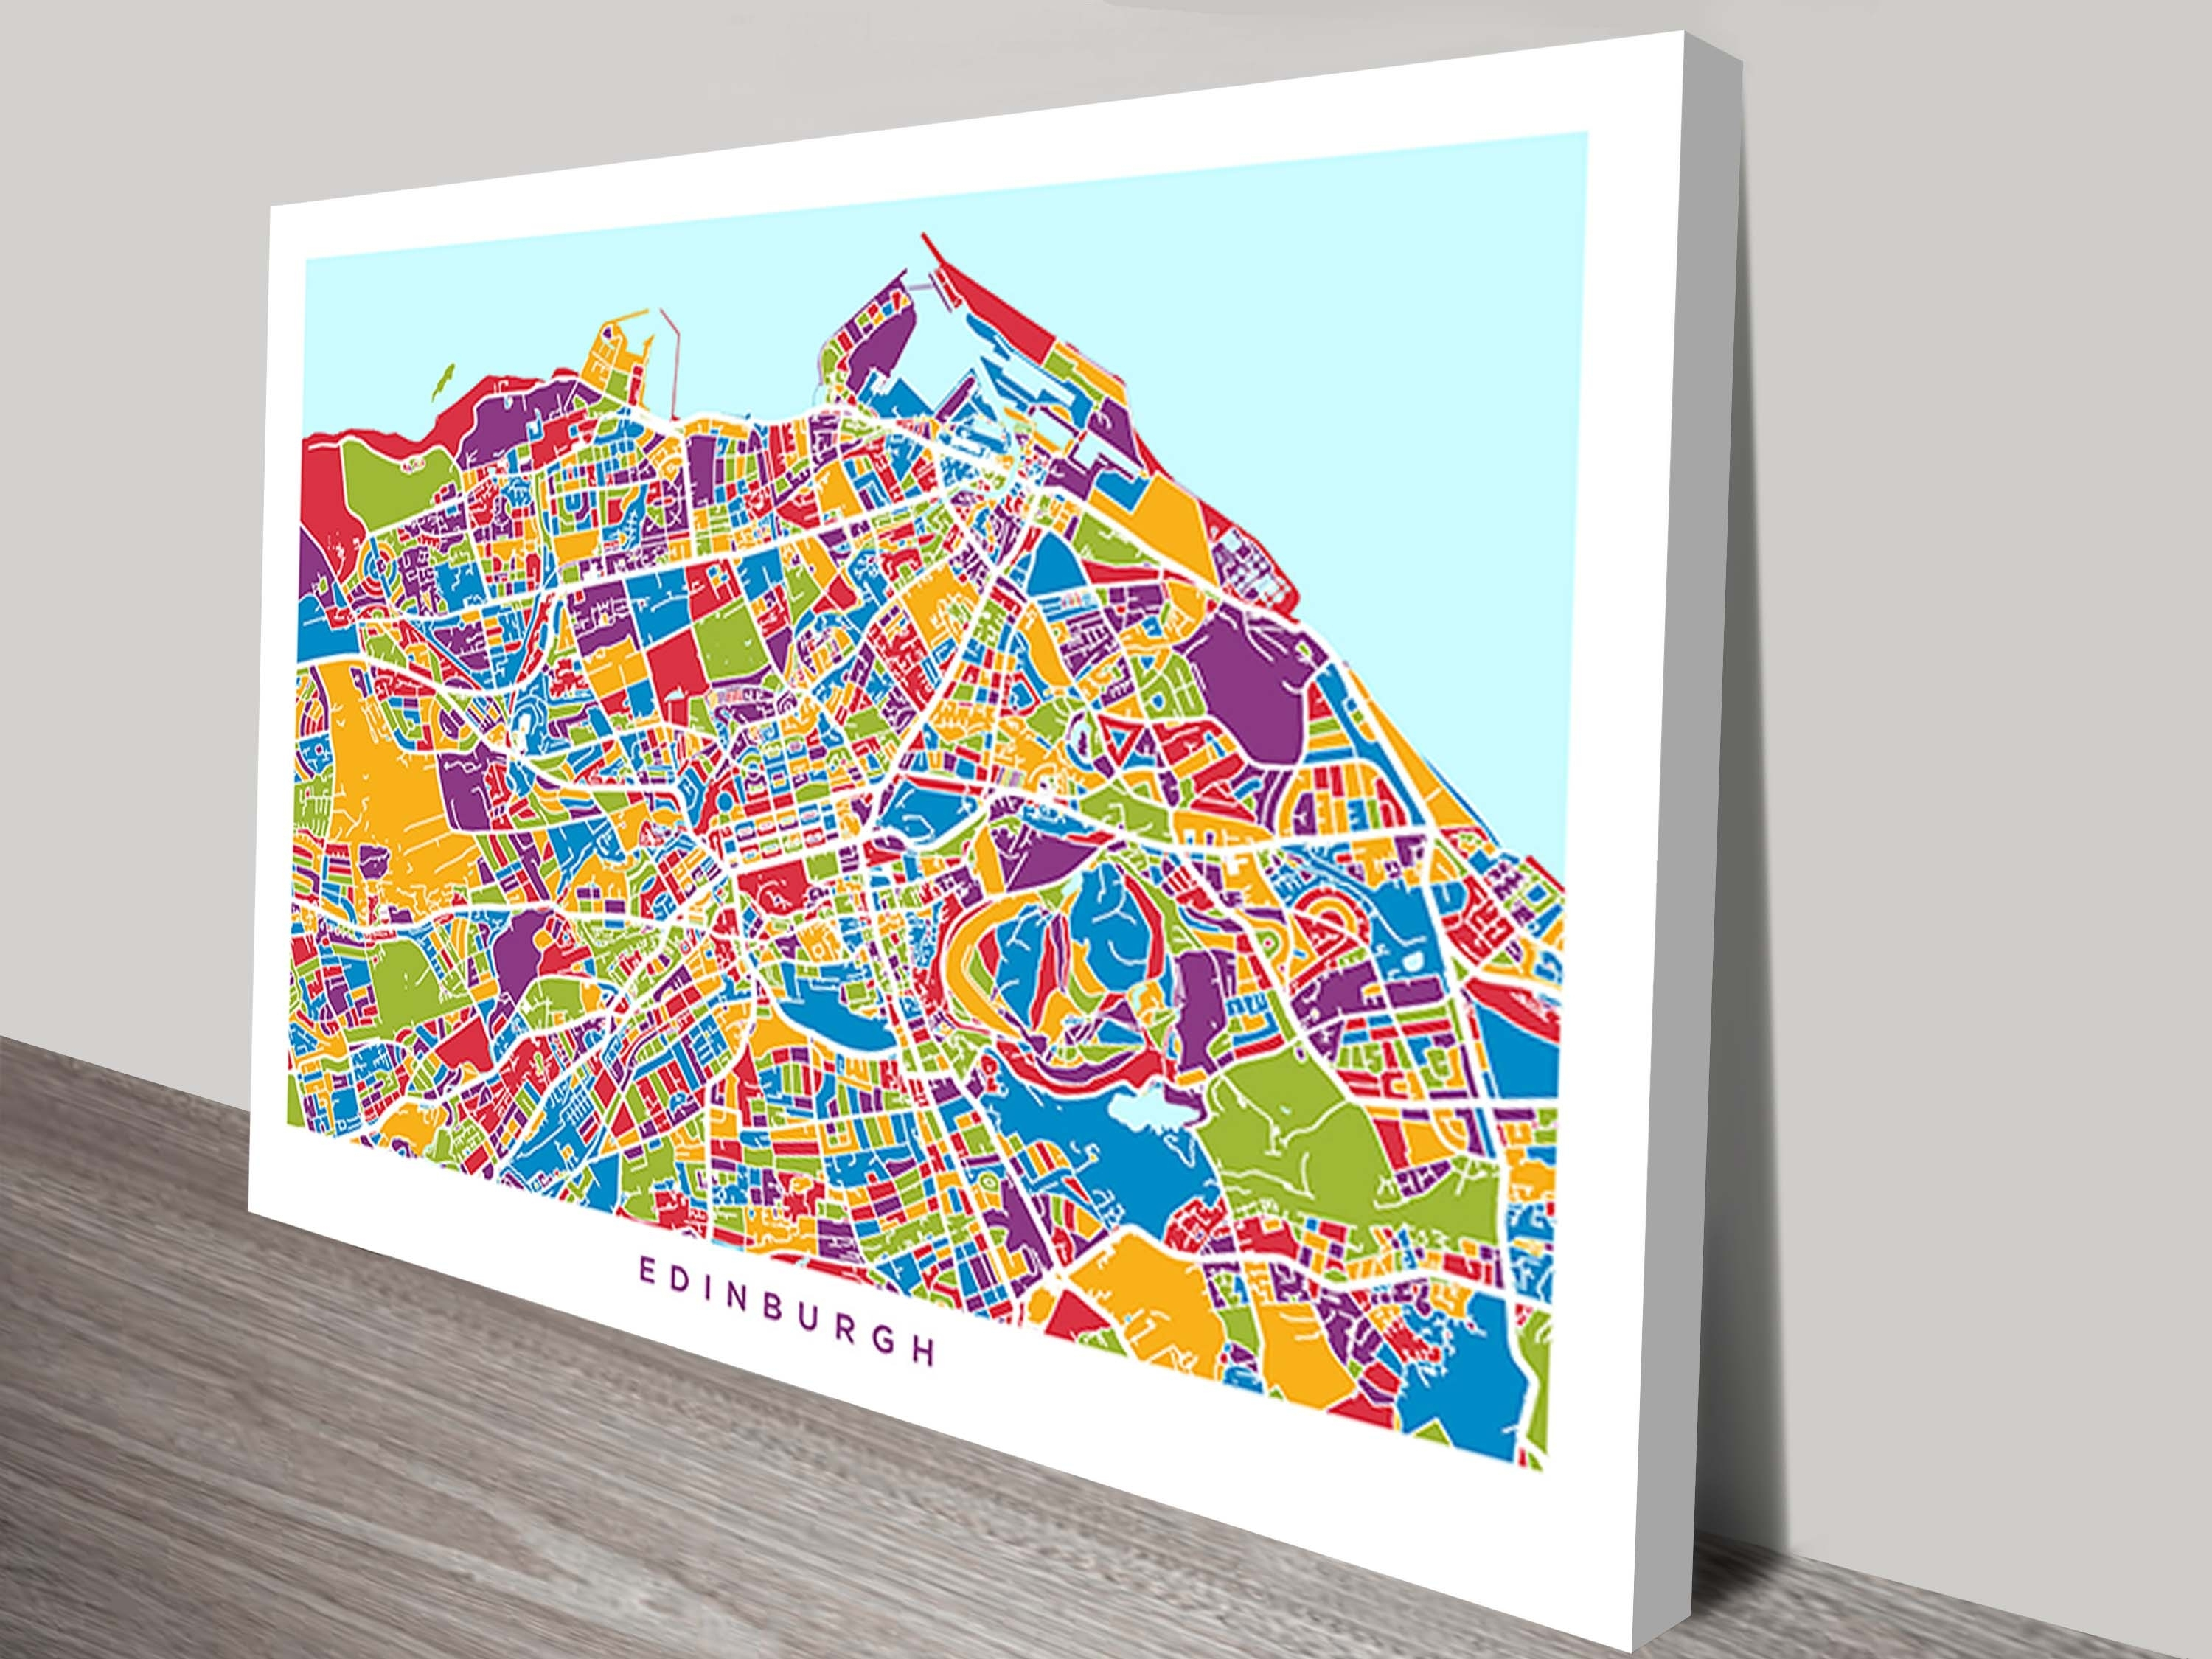 Edinburgh, Scotland Street Map Canvas Artmichael Tompsett Intended For Most Recent Edinburgh Canvas Prints Wall Art (View 13 of 15)